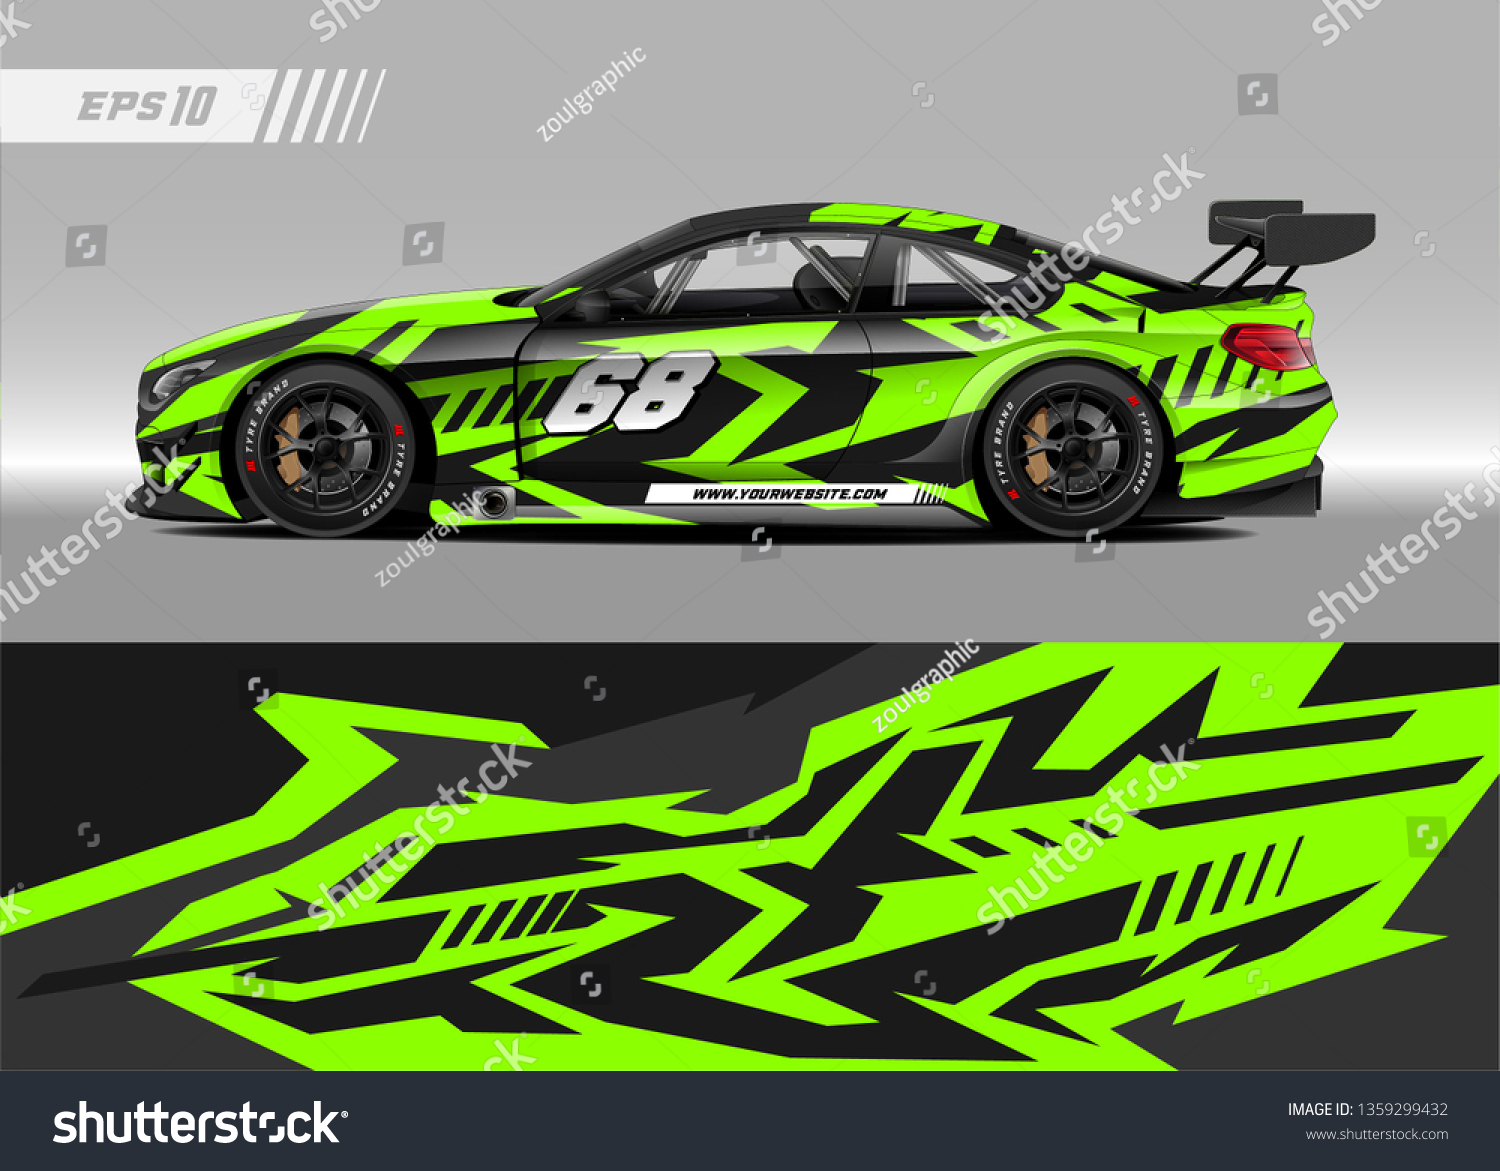 Racing car decal design vector graphic abstract stripe racing background kit designs for wrap vehicle